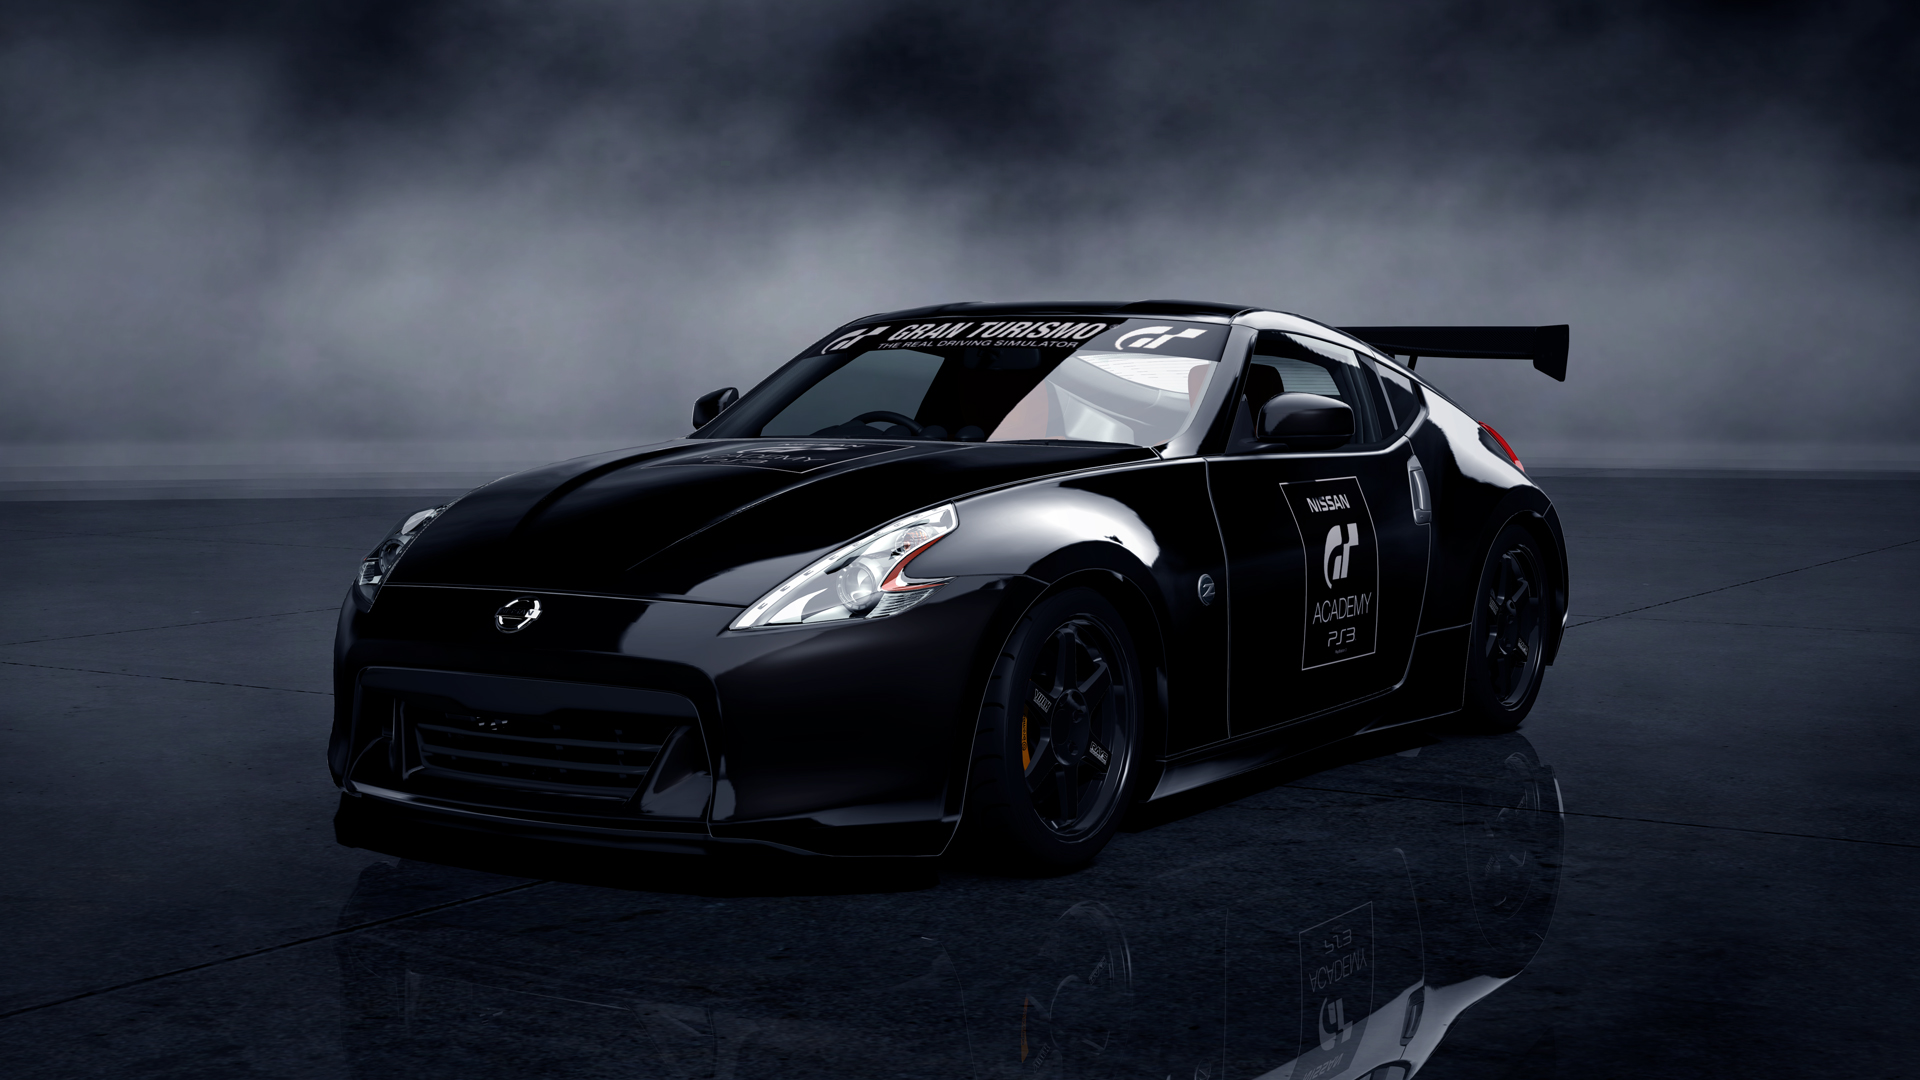 Download Desktop Wallpaper 3d Model Of Nissan Car Game Gran Turismo